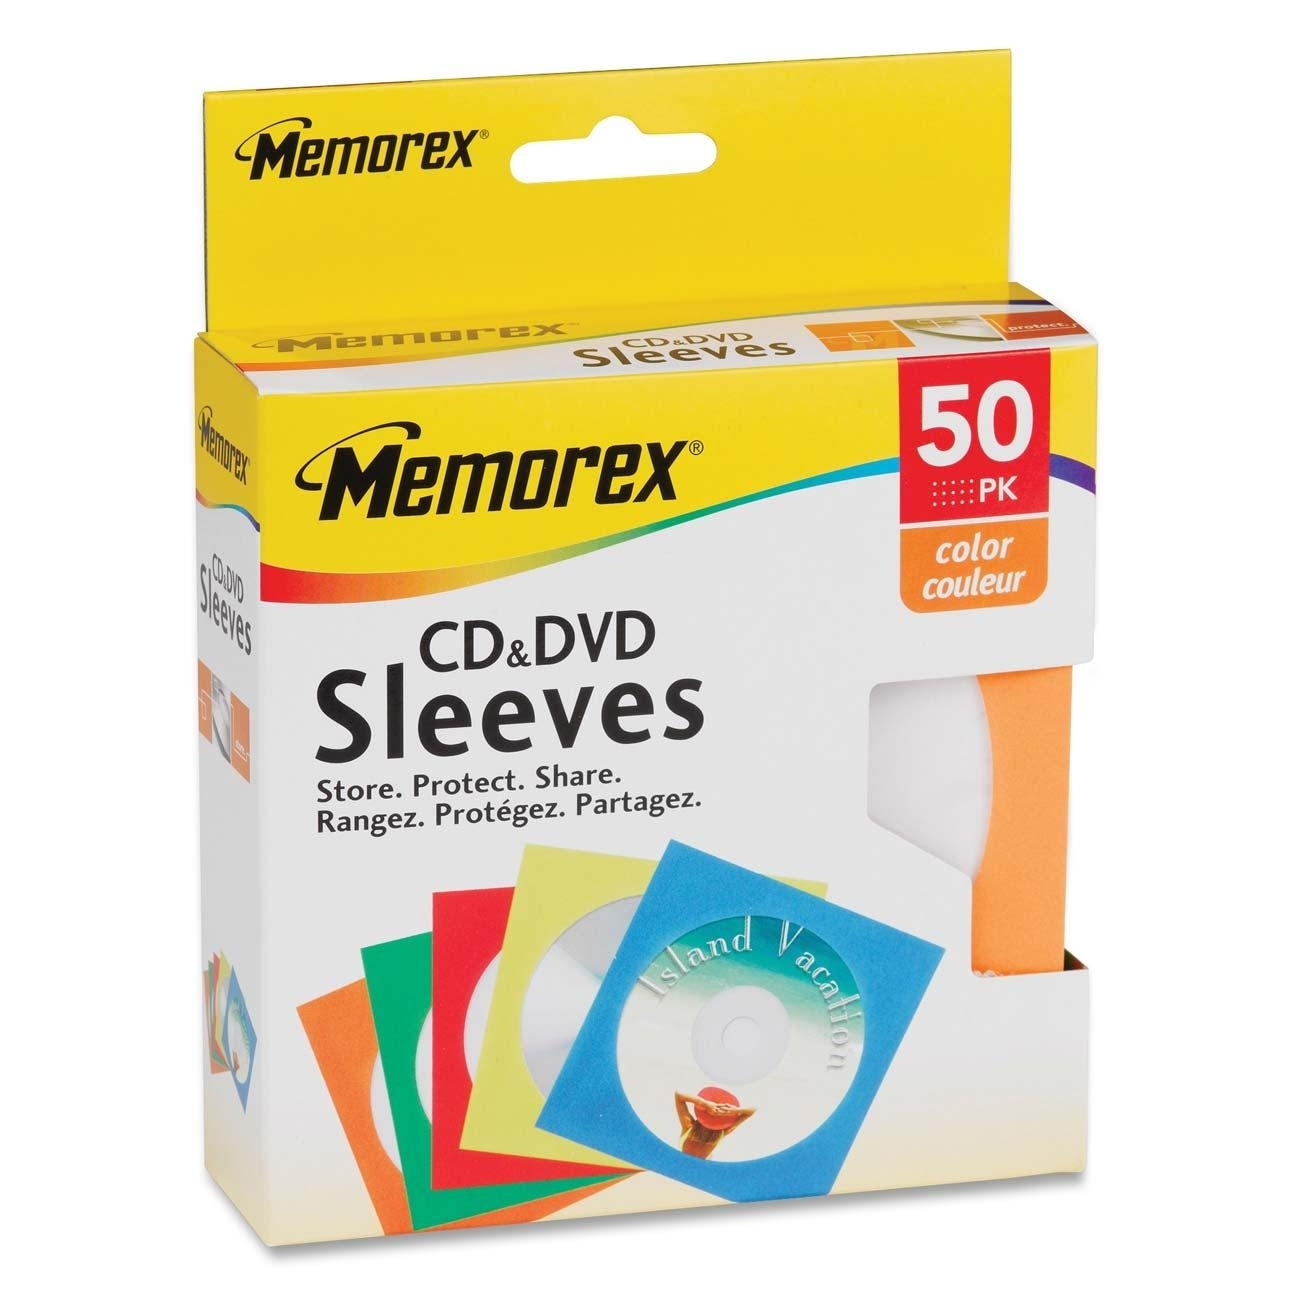 Memorex CD/DVD Paper Sleeves, 50-Pack, Assorted Colors